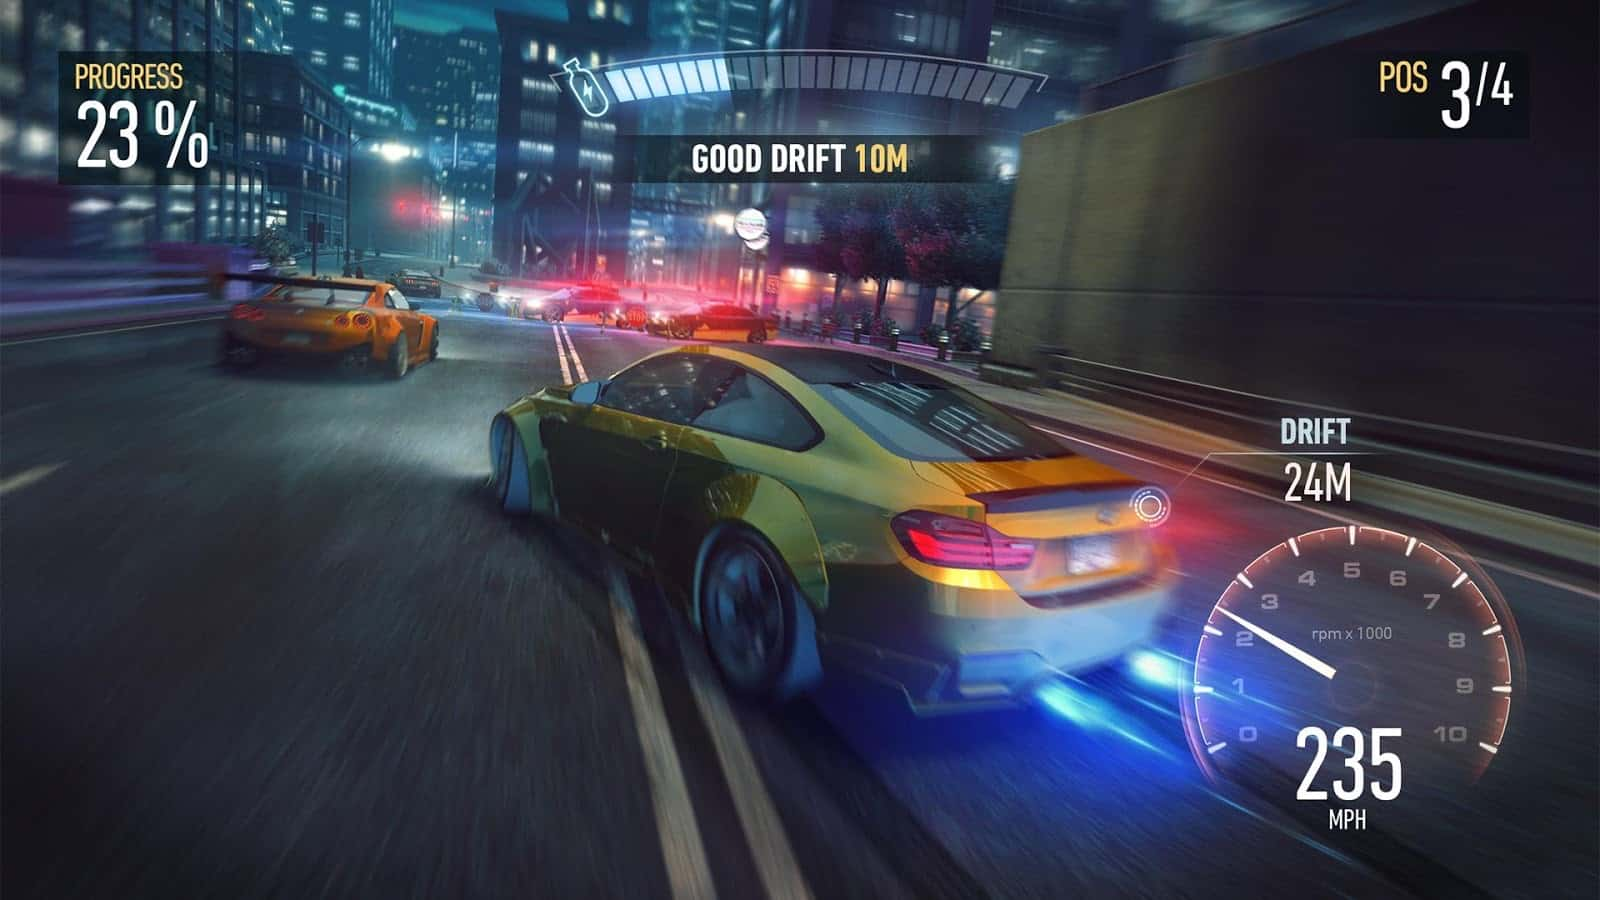 Cara-Memainkan-Game-Need-For-Speed-No-Limits-Mod-Apk